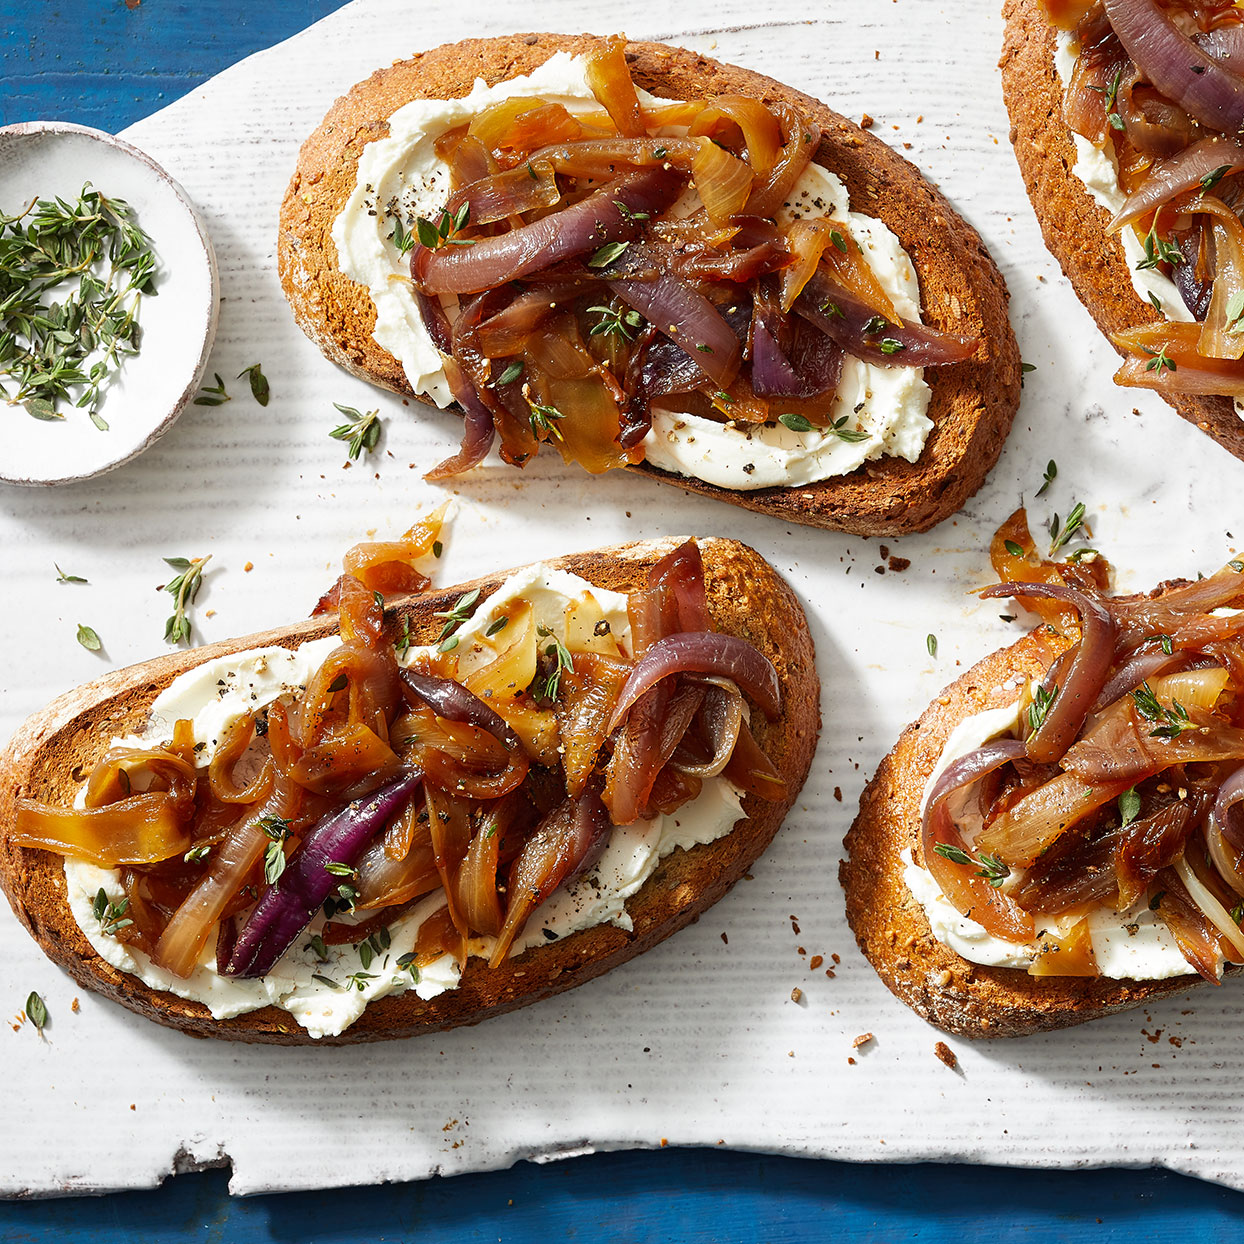 Caramelized Onion & Goat Cheese Toast